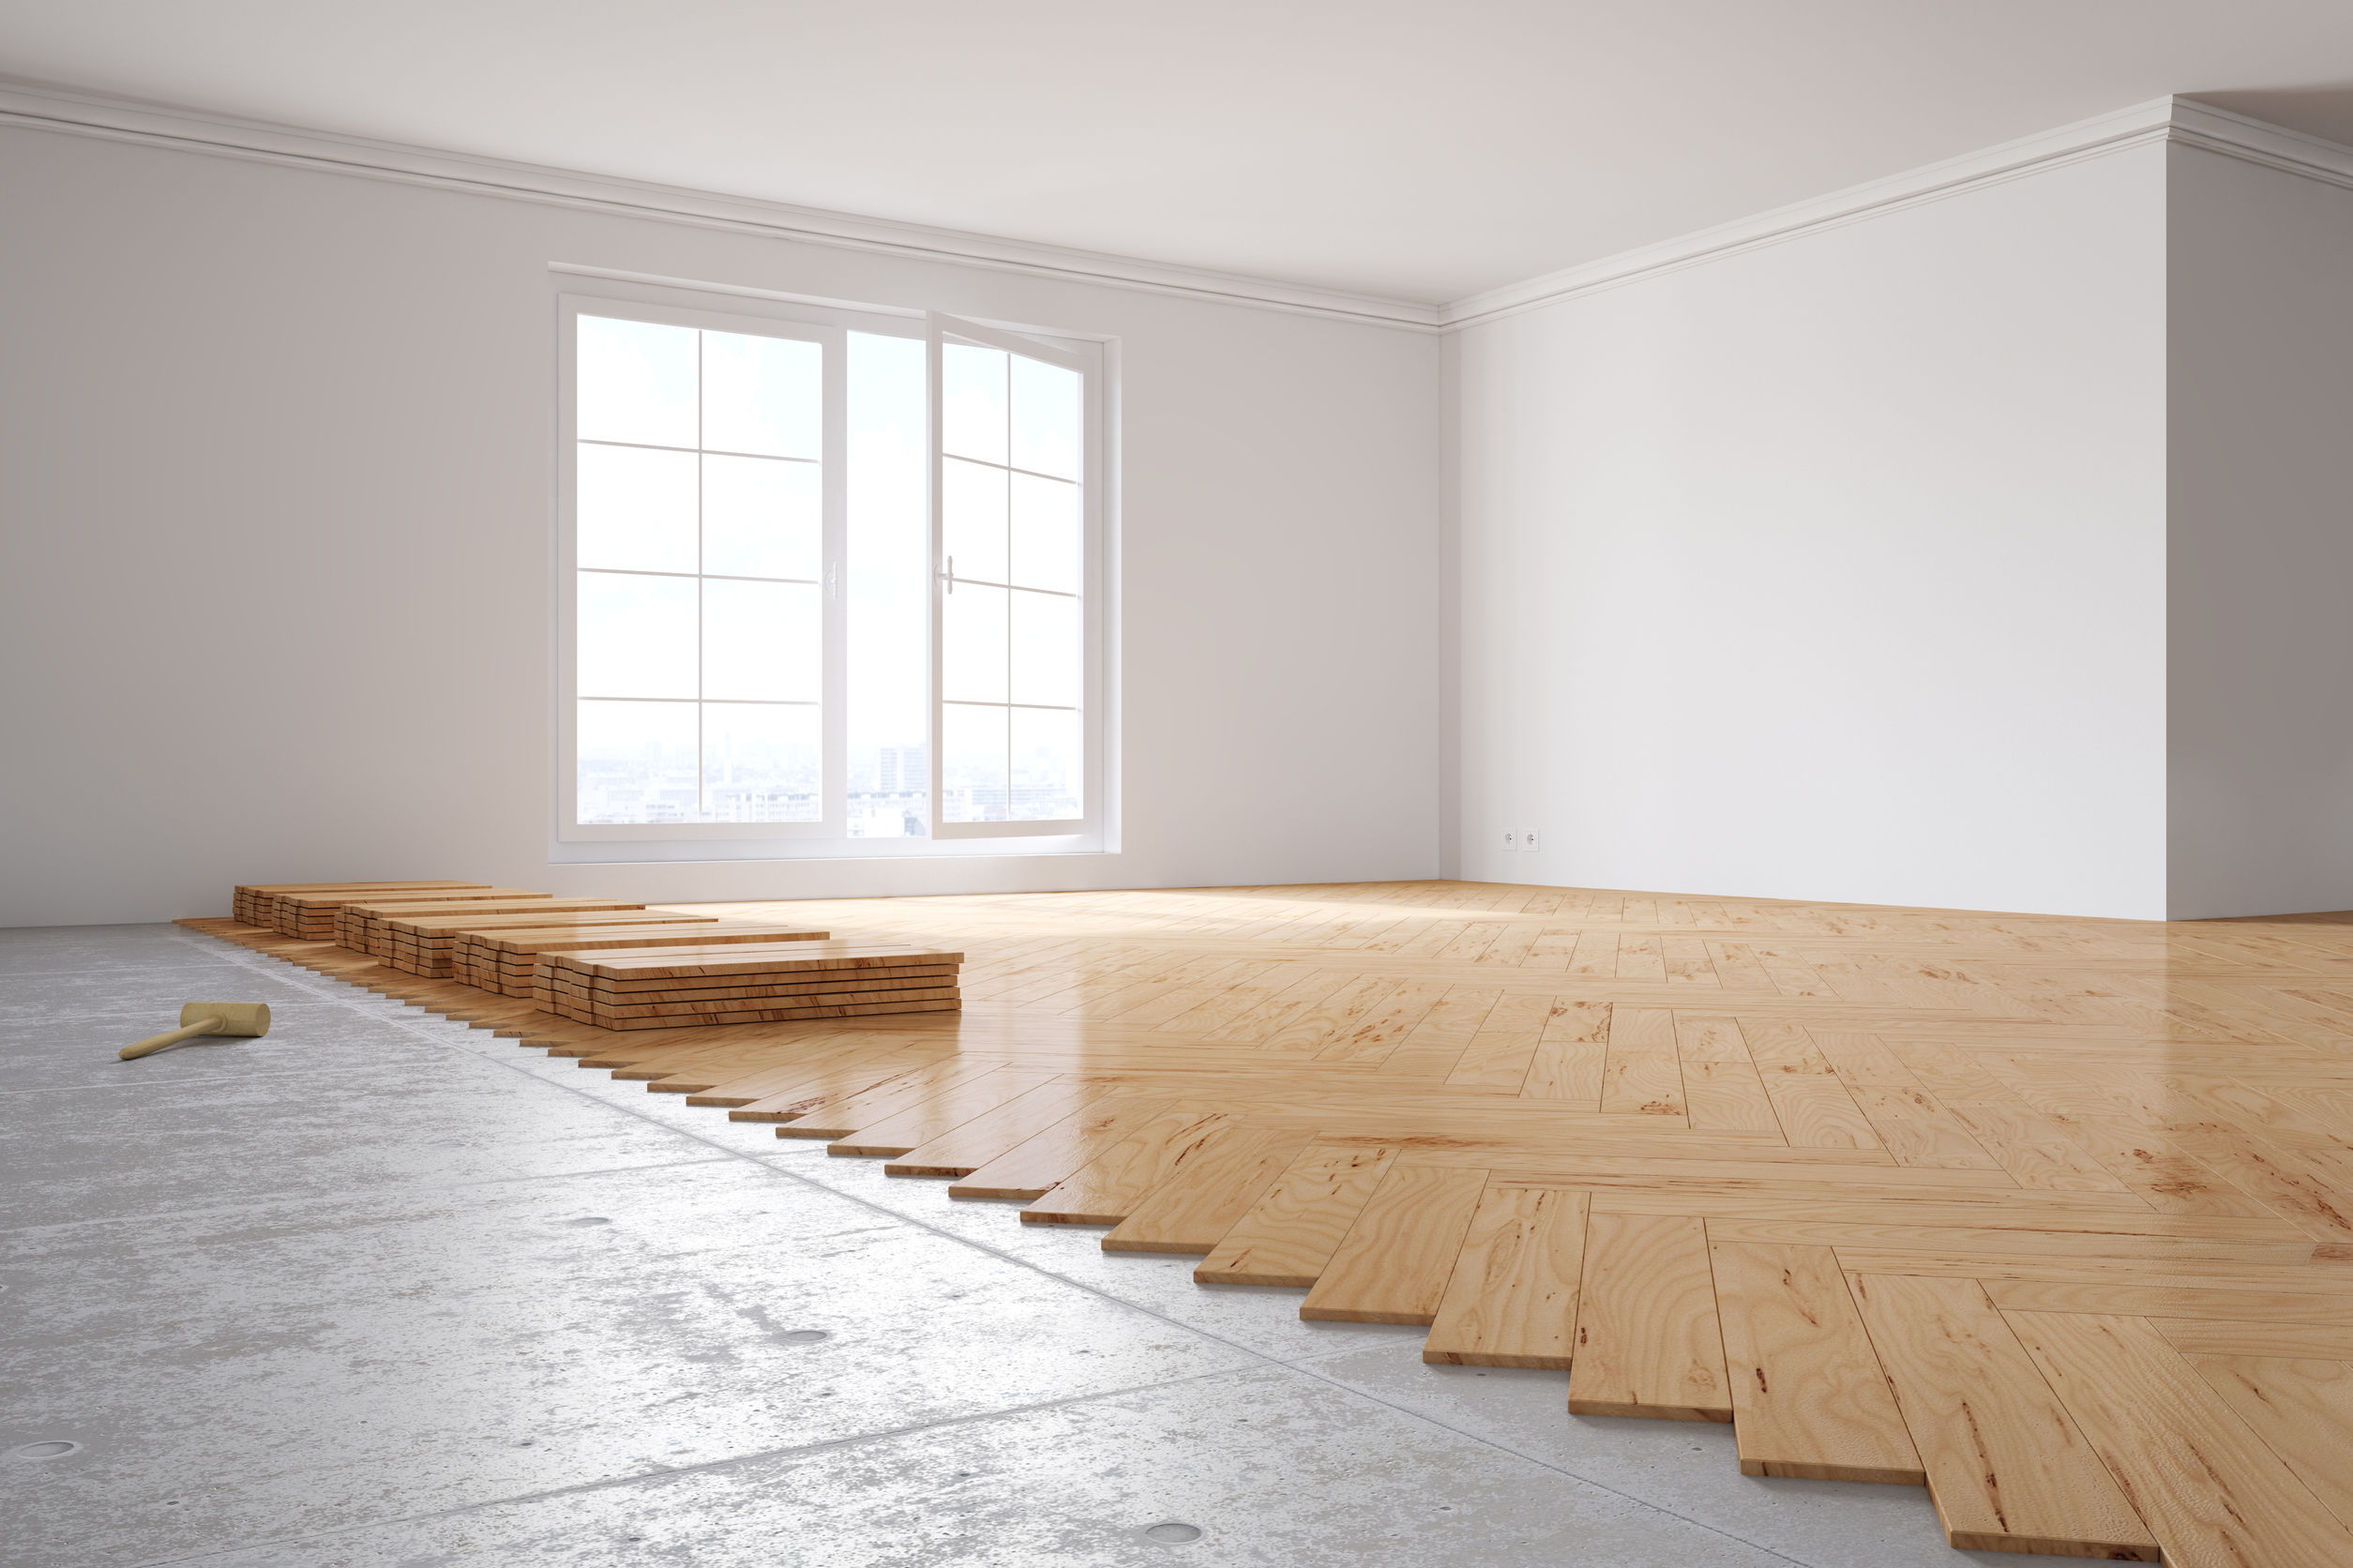 55681500 - laying out poplar hardwood in room in a house